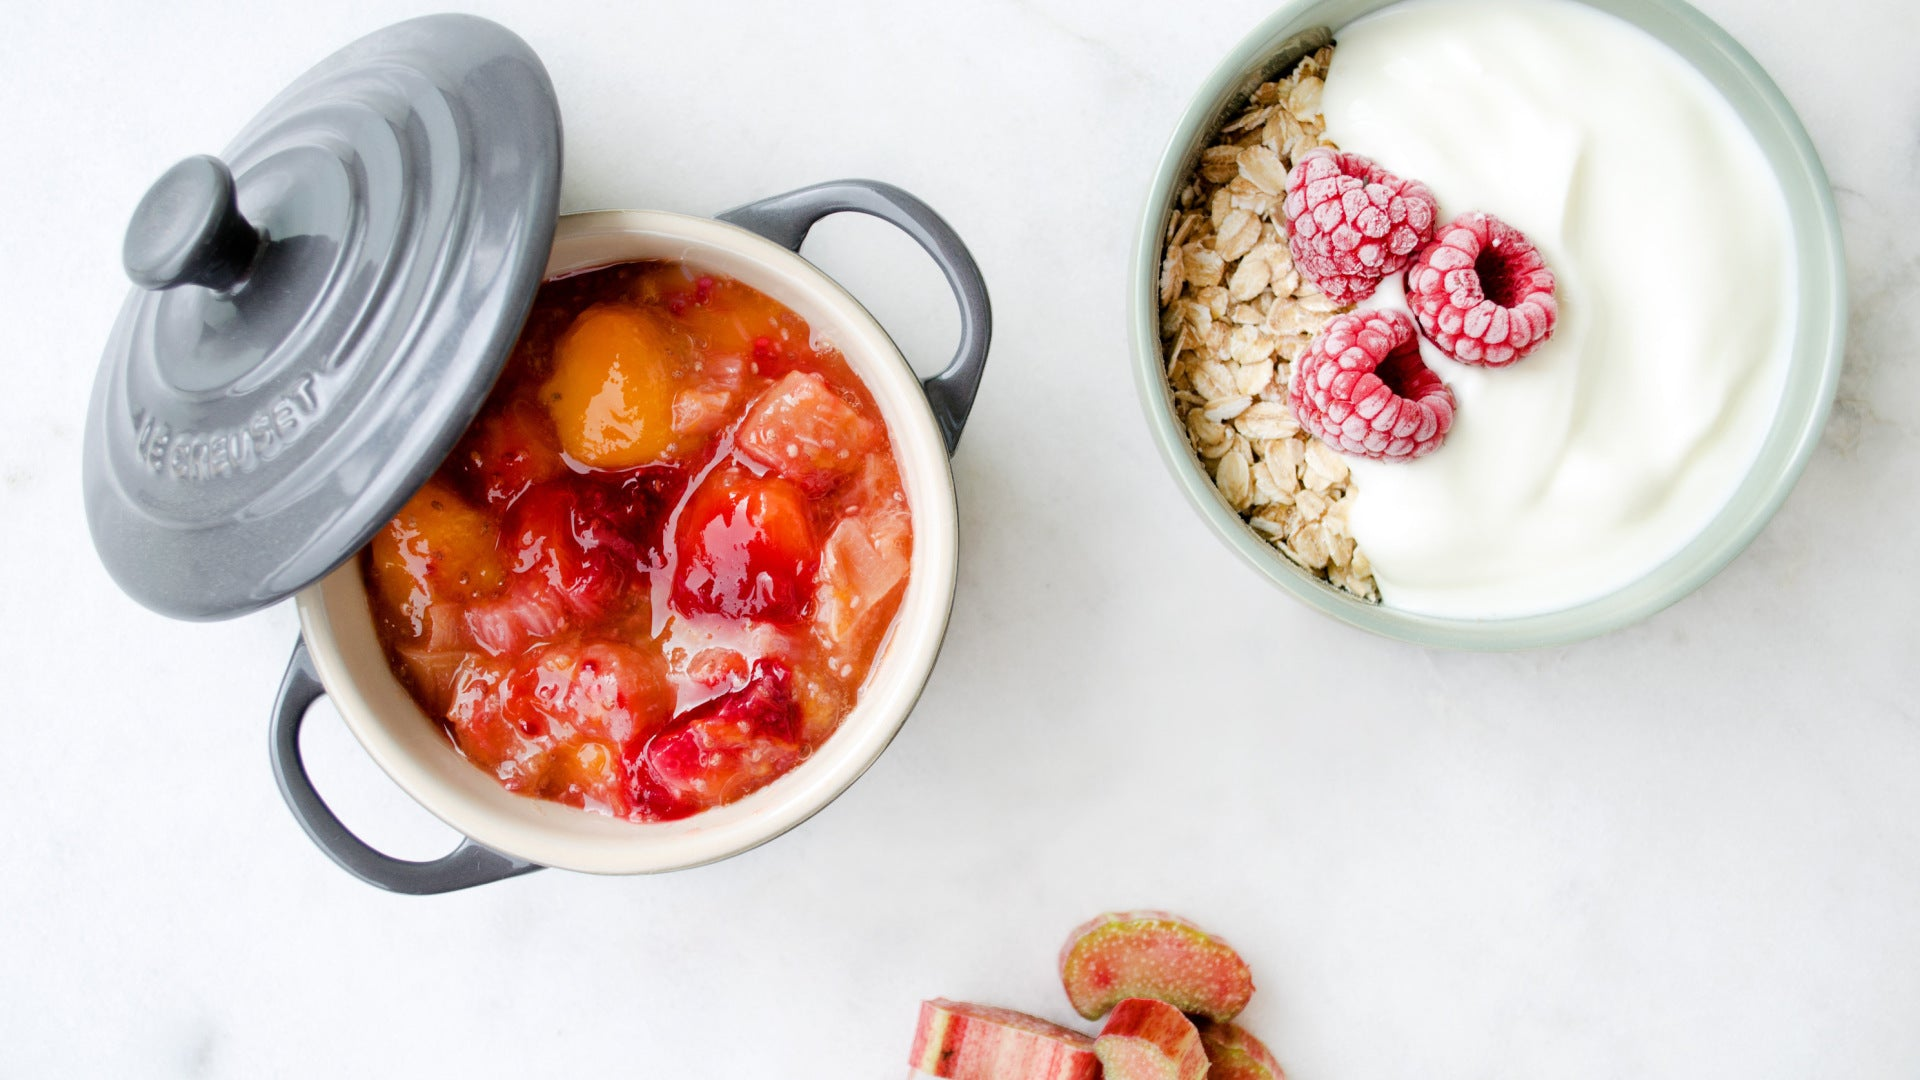 a pot with a rhubarb compost and a bowl with yoghurt and oats